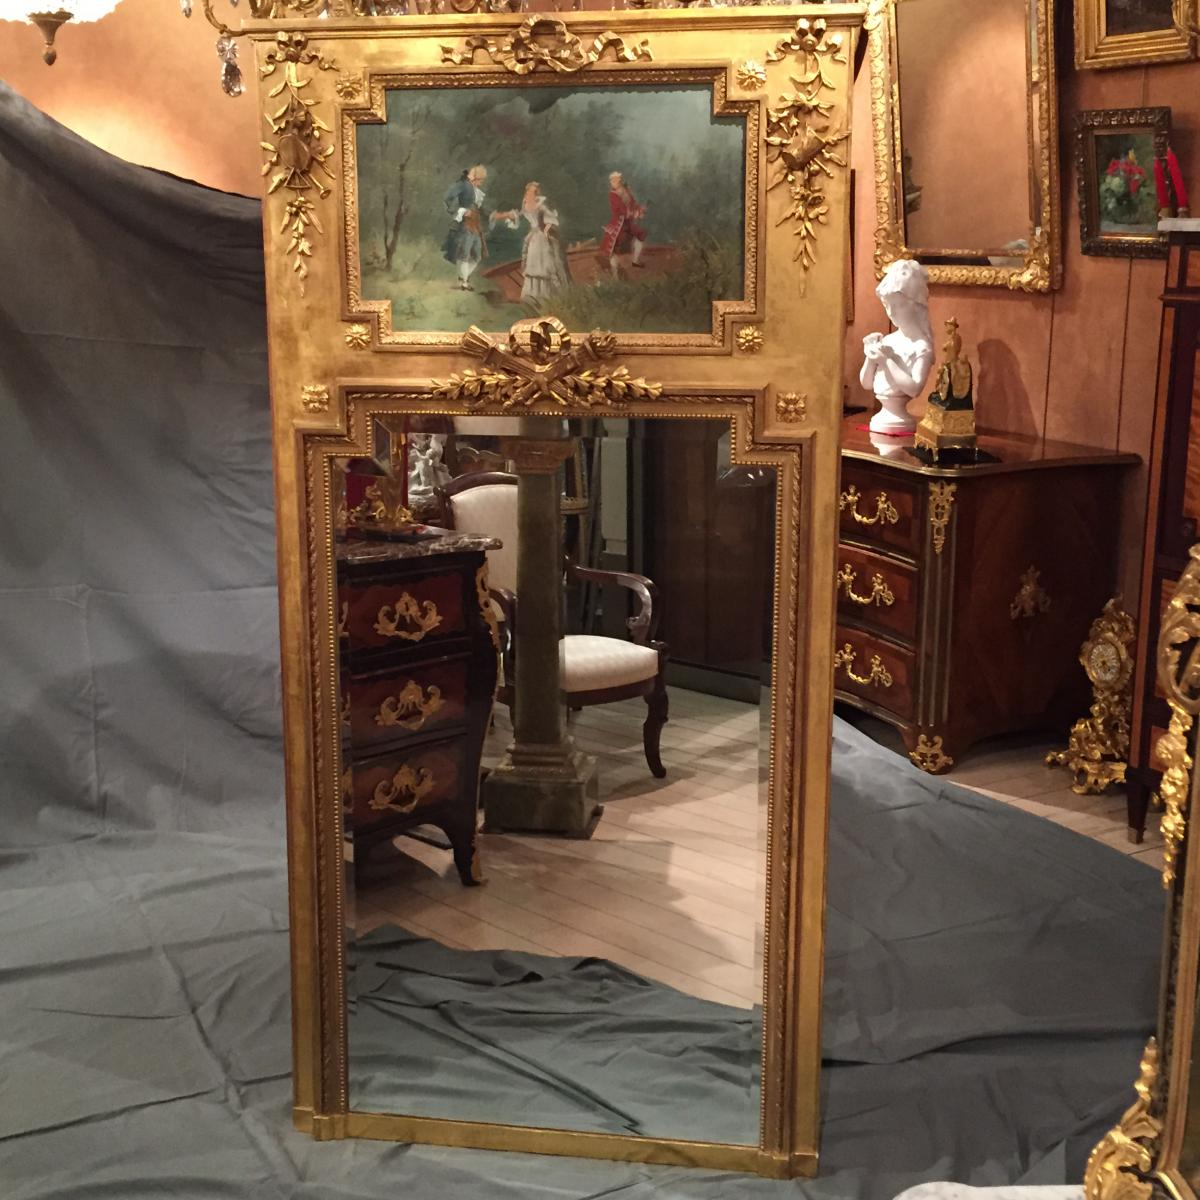 miroir trumeau de style louis xvi d 39 poque xix me trumeaux. Black Bedroom Furniture Sets. Home Design Ideas